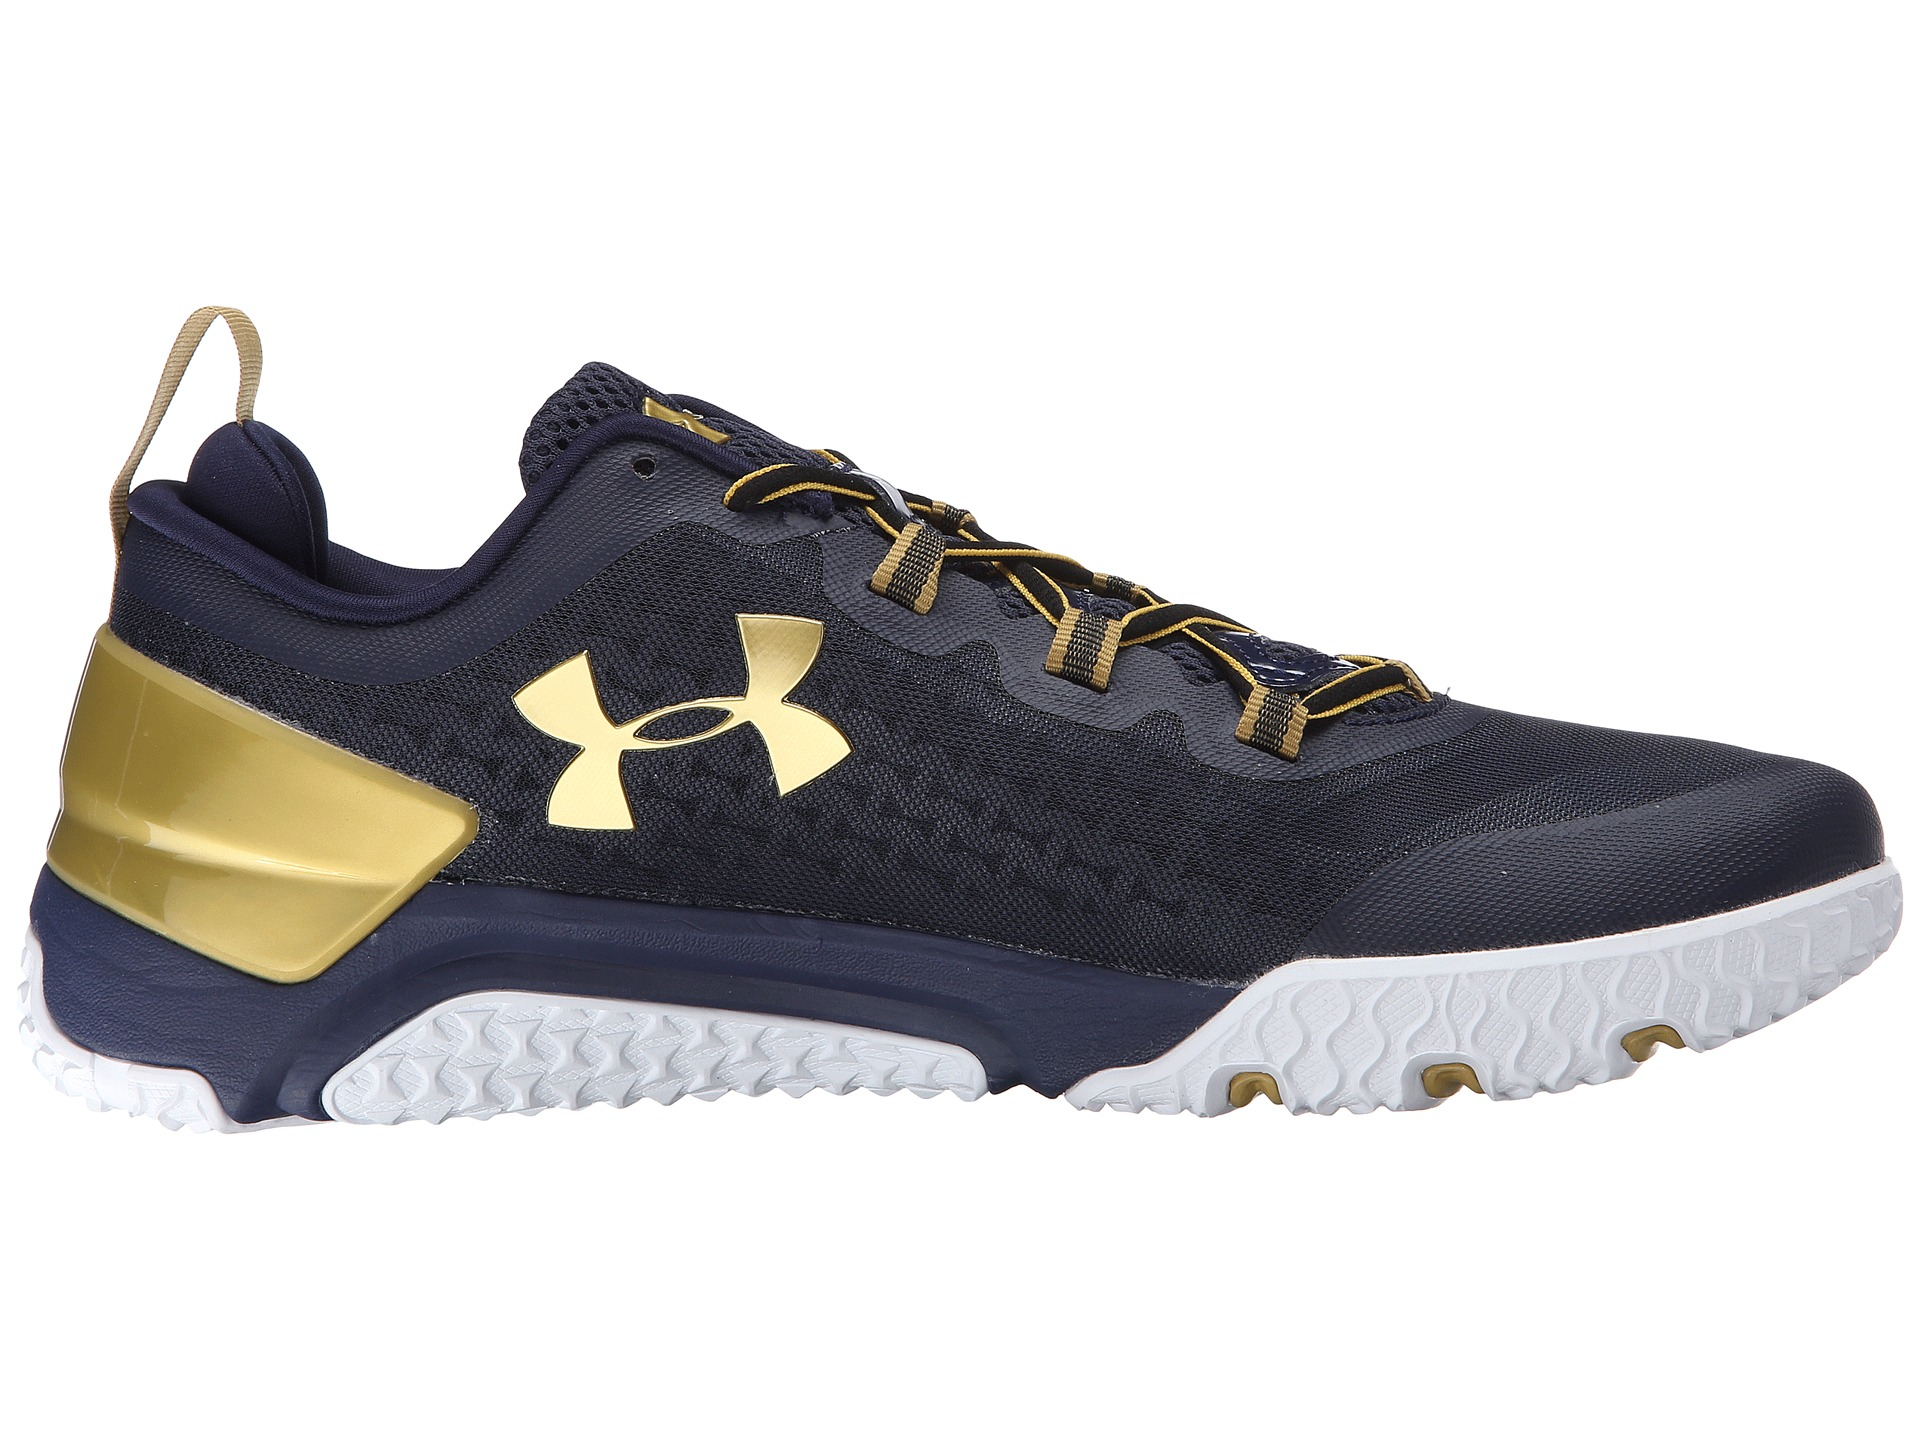 43a6680ae548 Lyst - Under Armour Ua Charged Ultimate Tr Low in Blue for Men